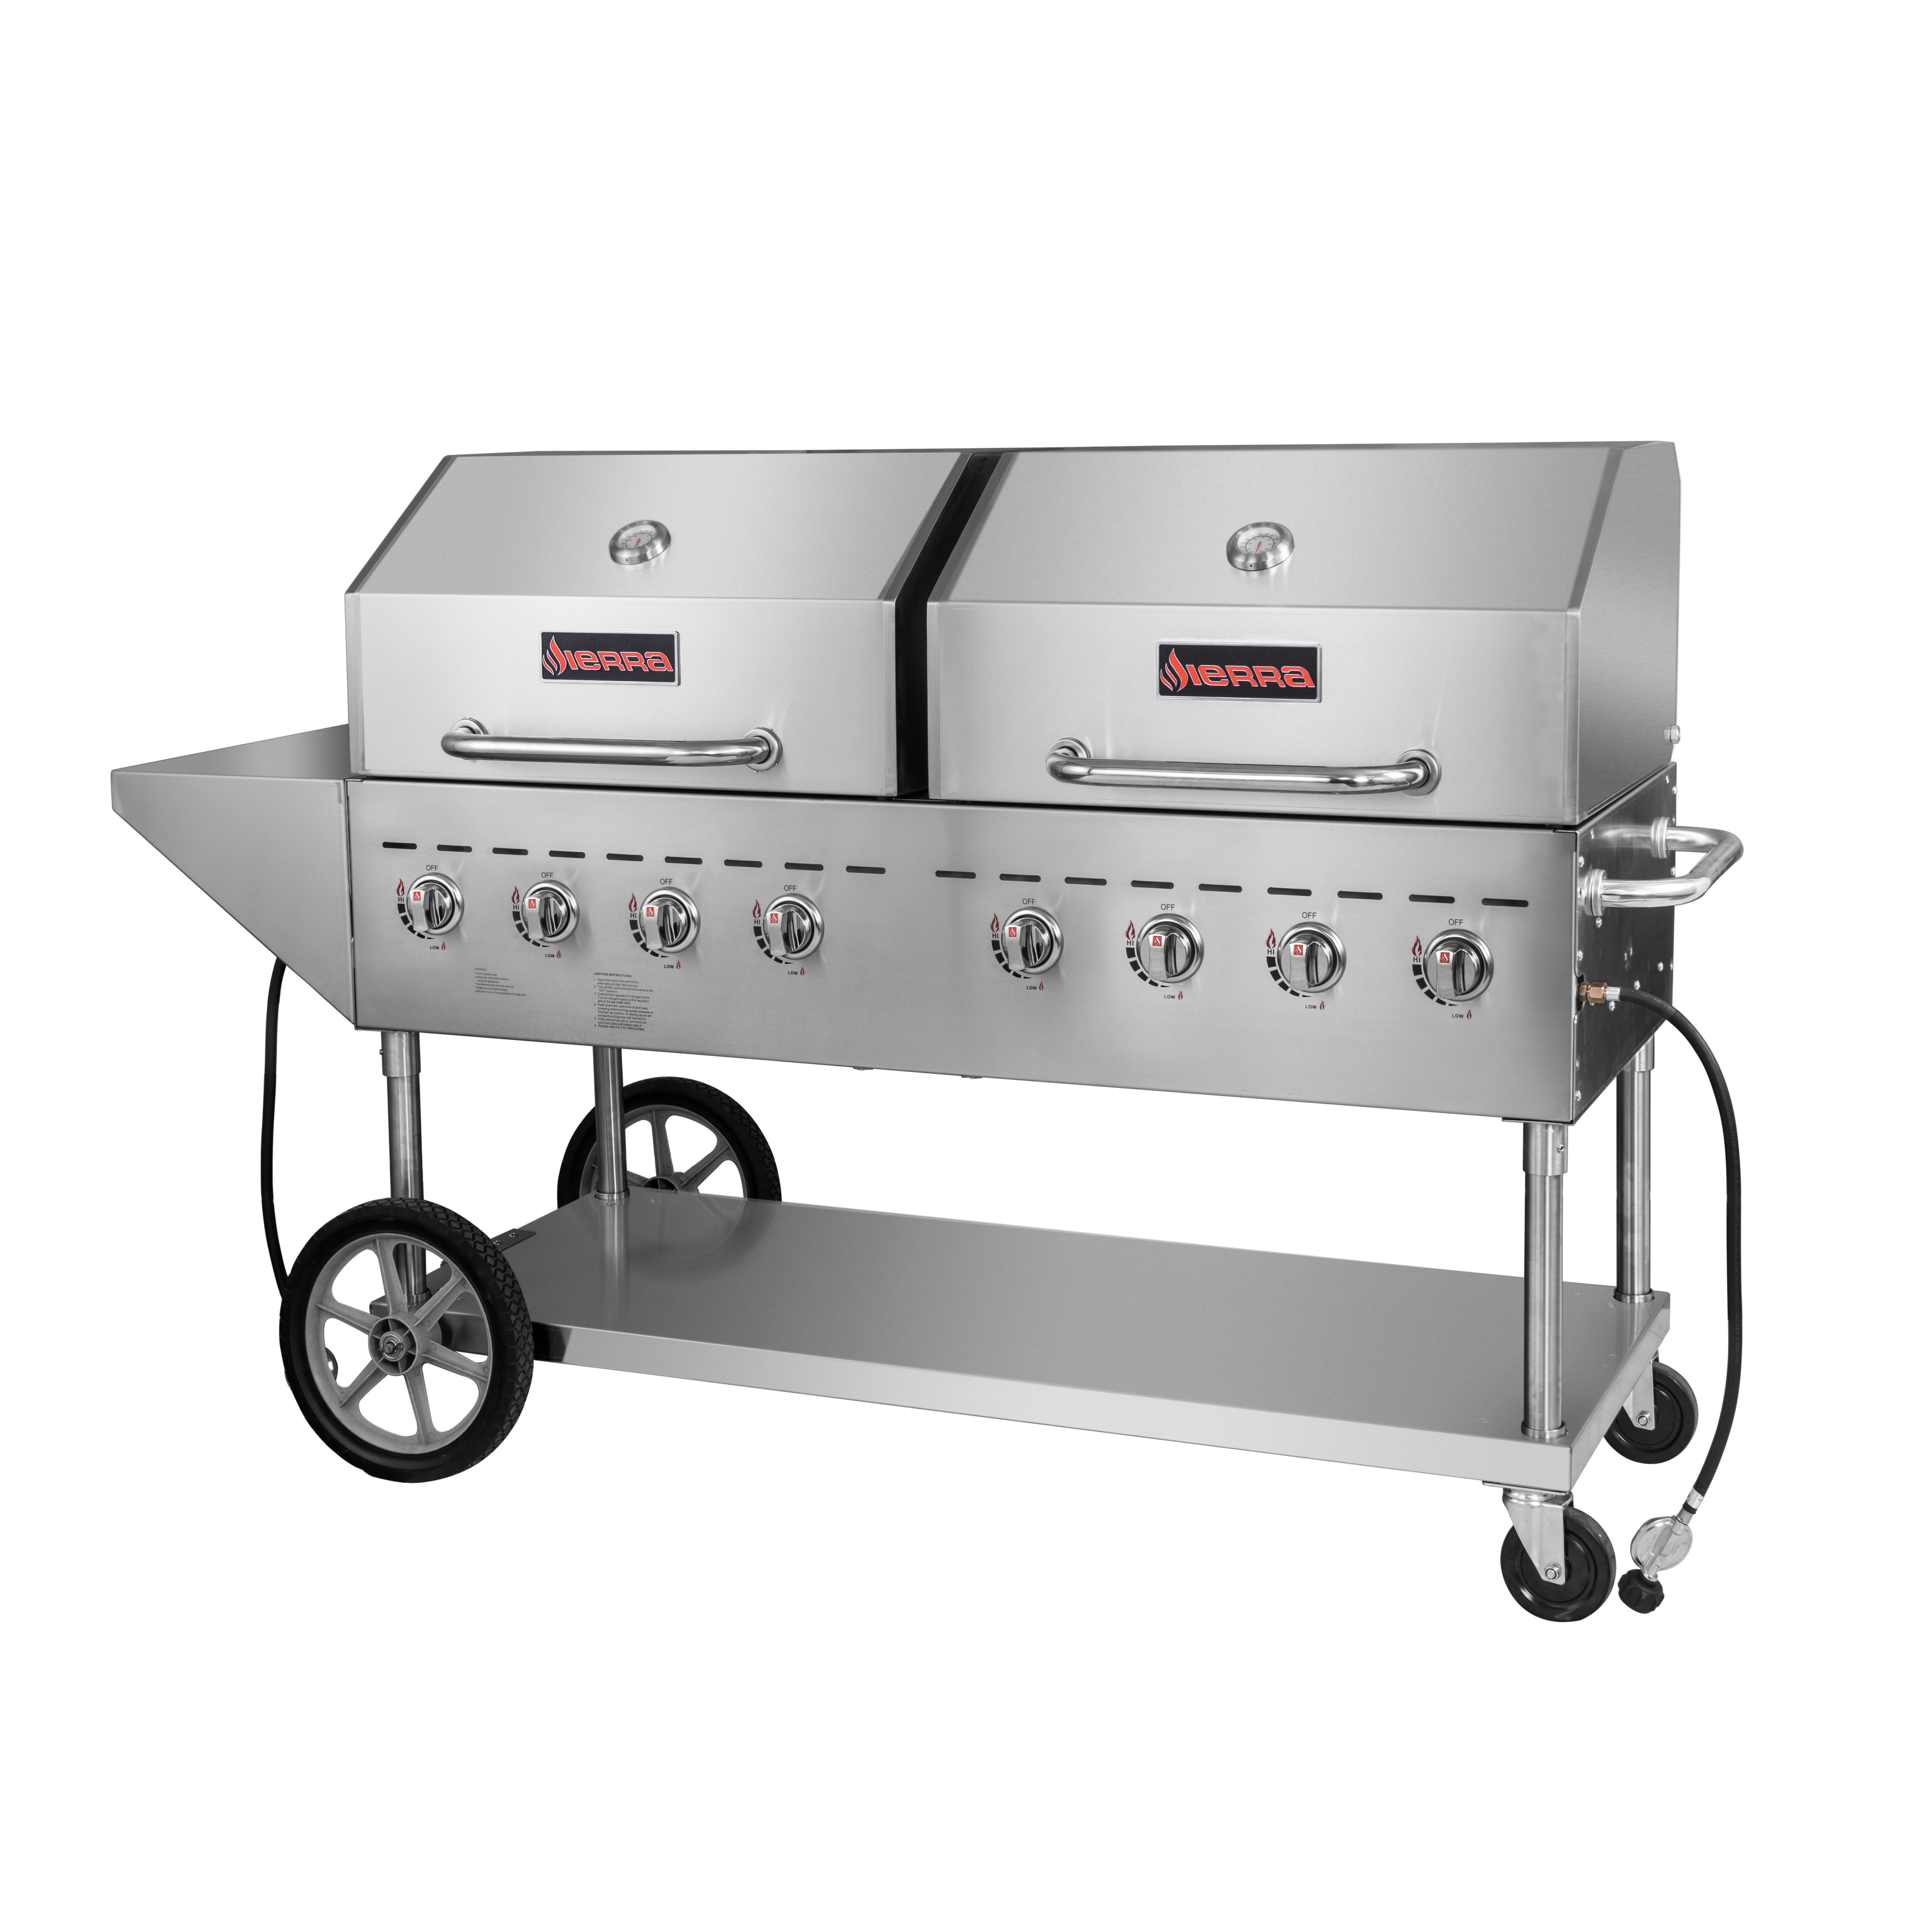 MVP Group LLC SRBQ-60 charbroiler, gas, outdoor grill